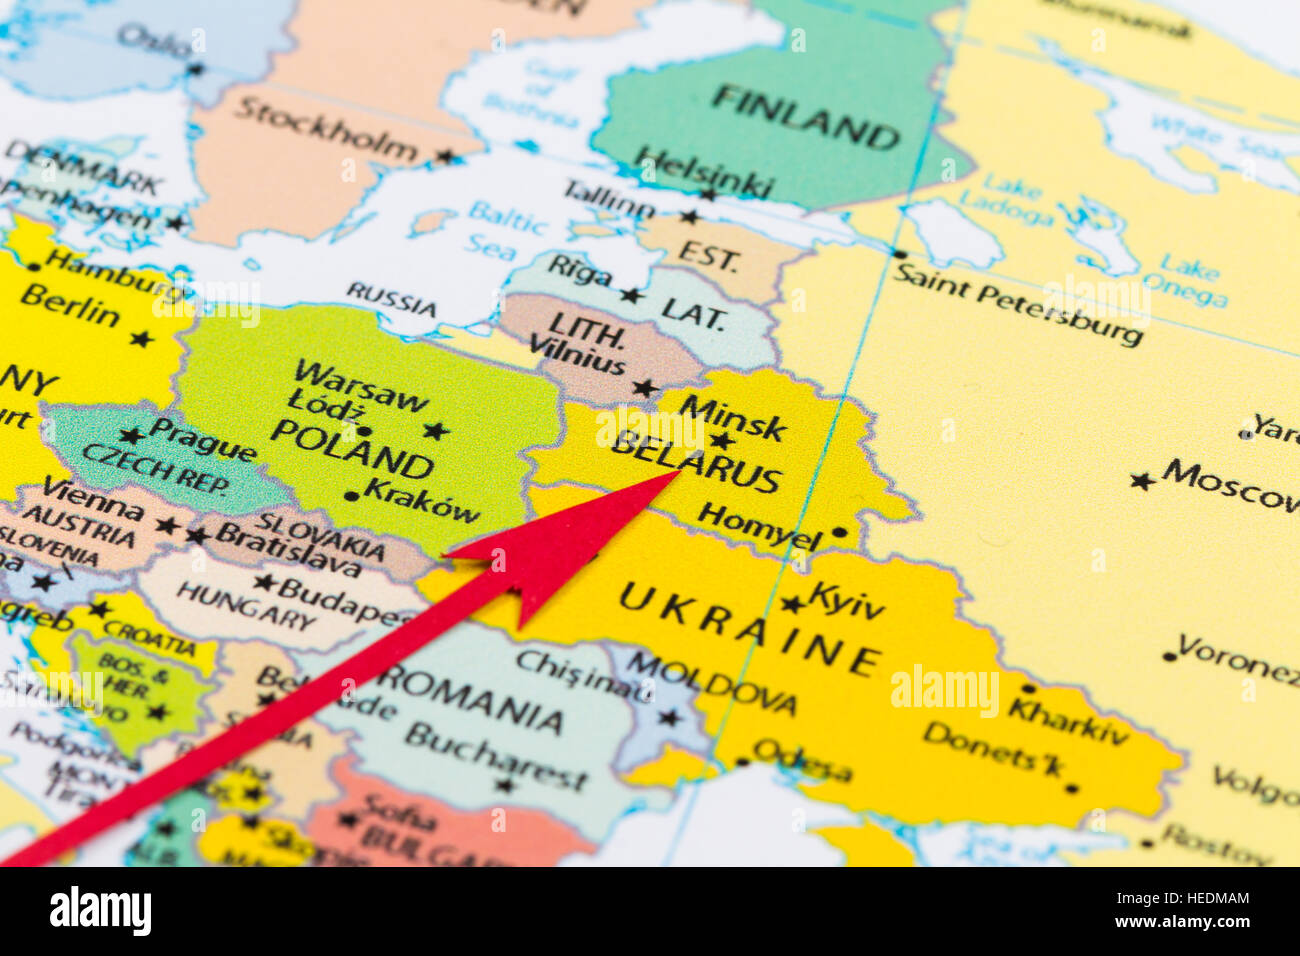 Red arrow pointing belarus on the map of europe continent stock red arrow pointing belarus on the map of europe continent gumiabroncs Images